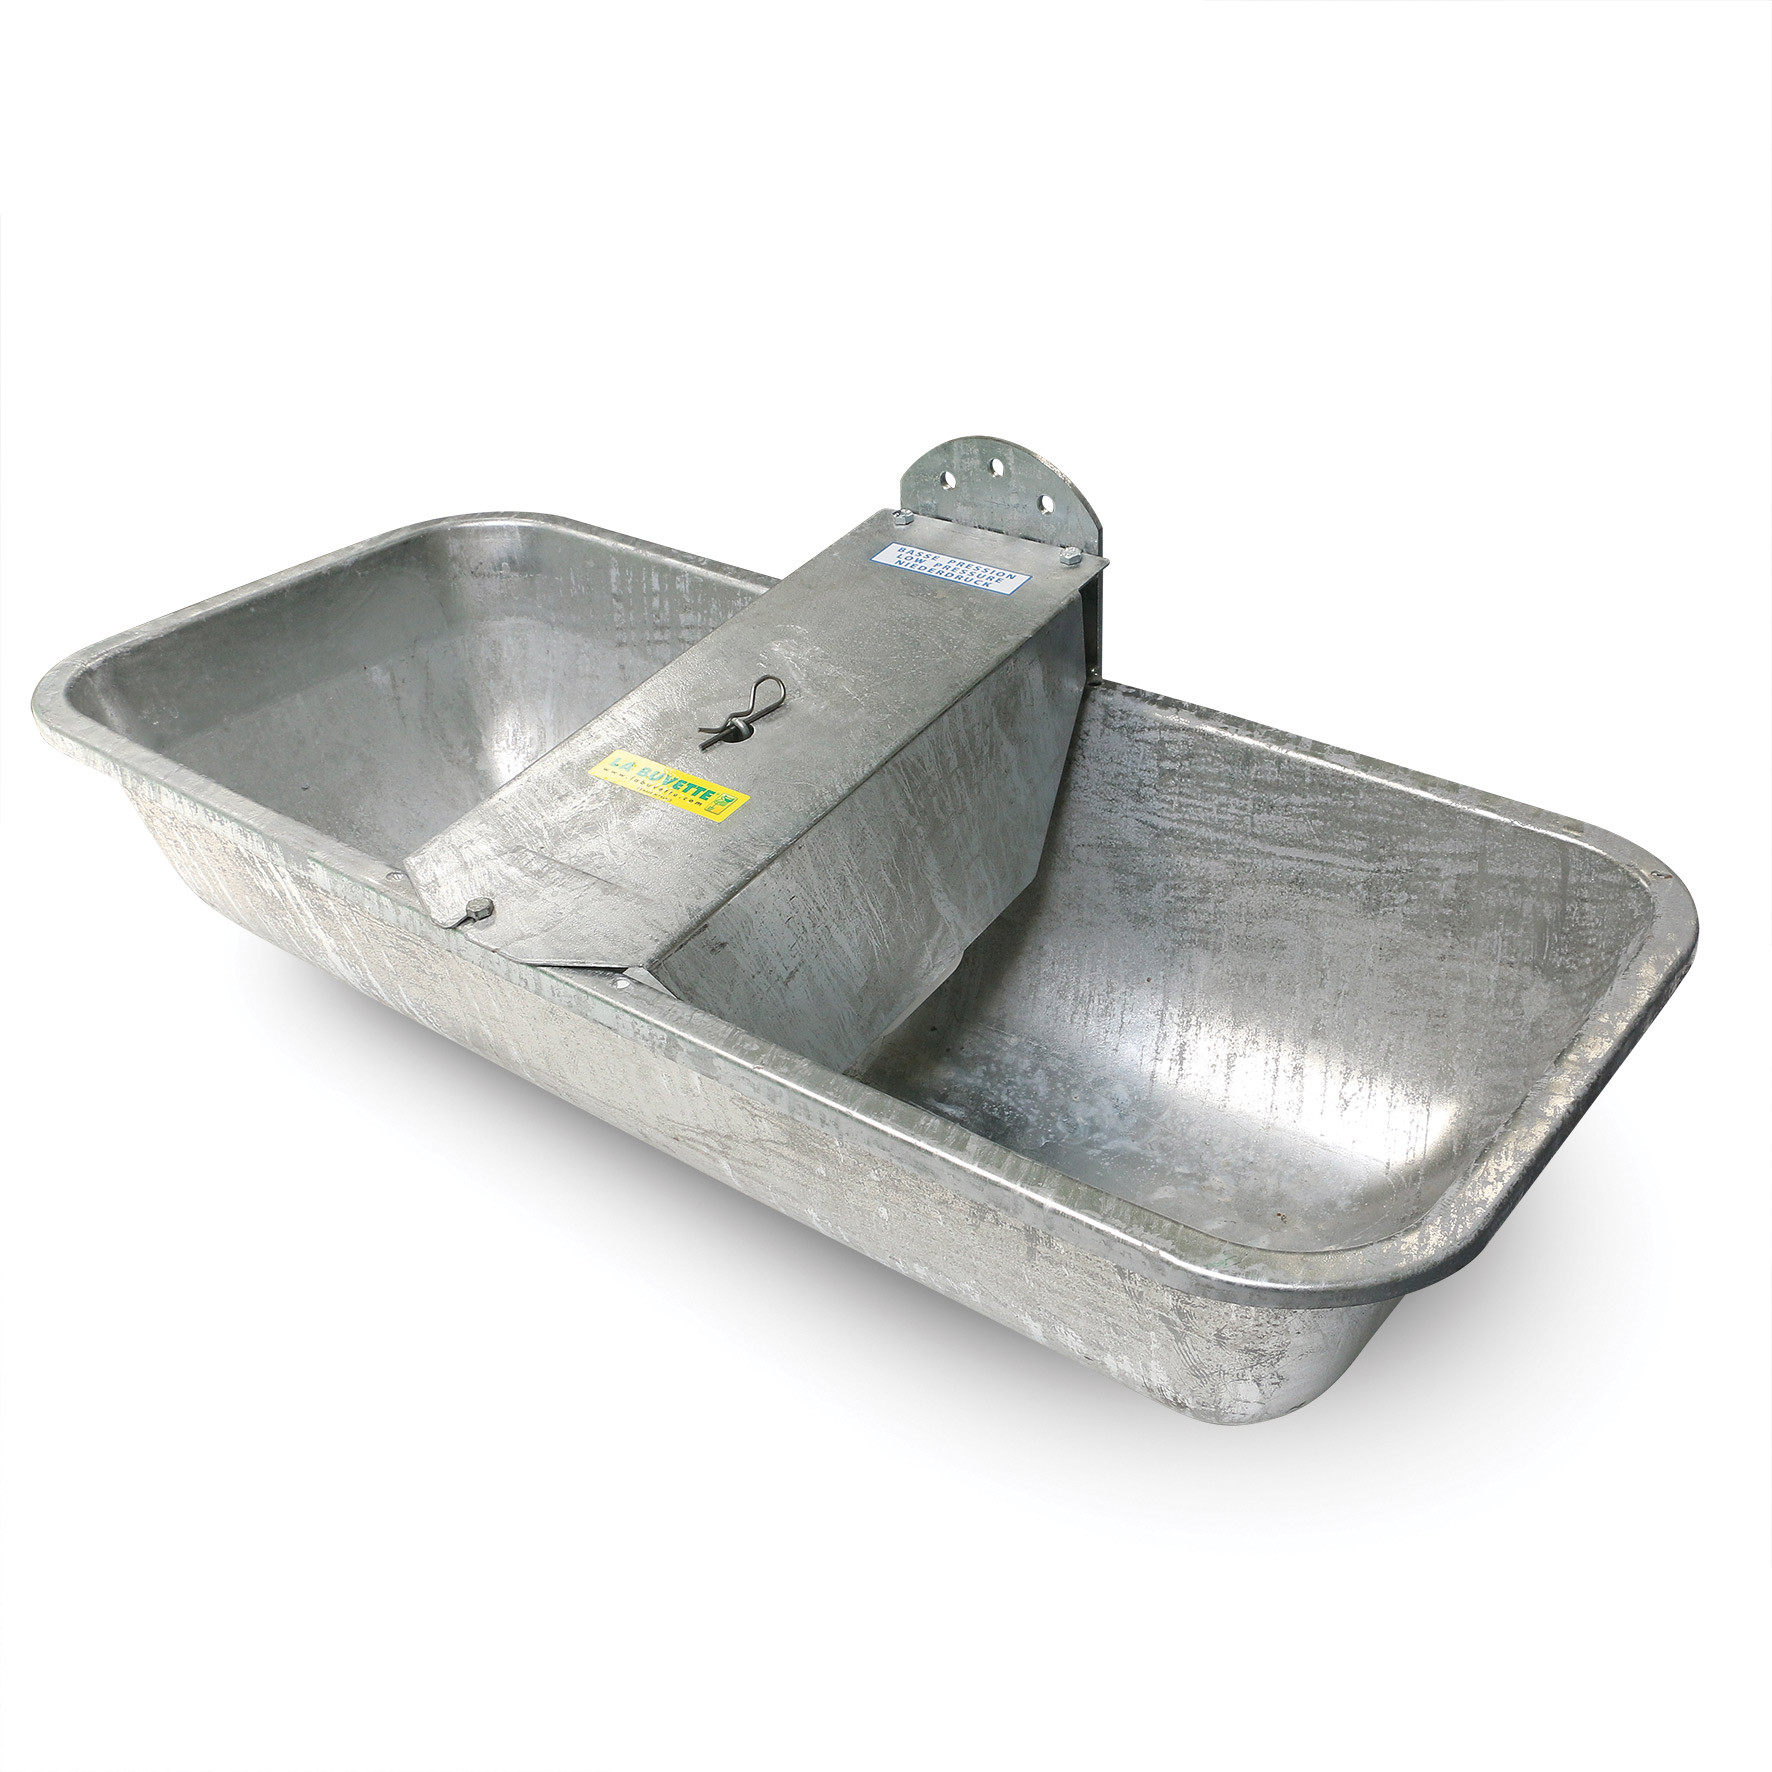 GALVALAC 65T double drinking trough